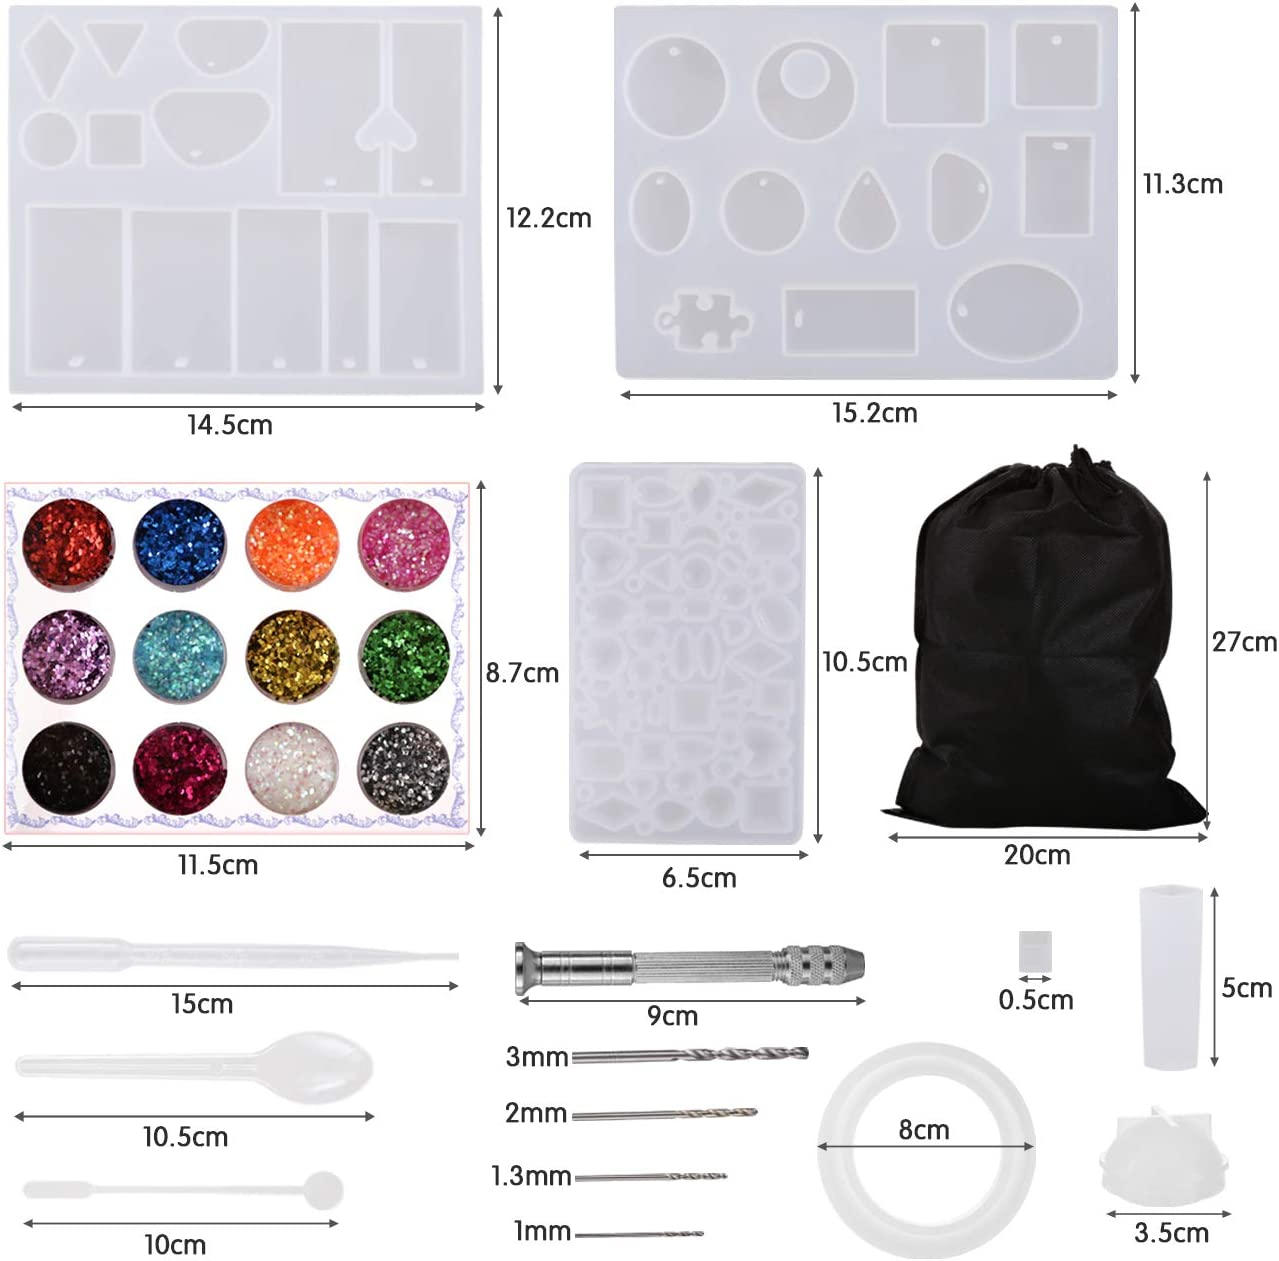 LIHAO 94 PCS Resin Casting Molds and Tools Set DIY Jewelry Mold Assorted Styles Silicone Molds for Pendant Jewelry Making DIY Jewelry Craft